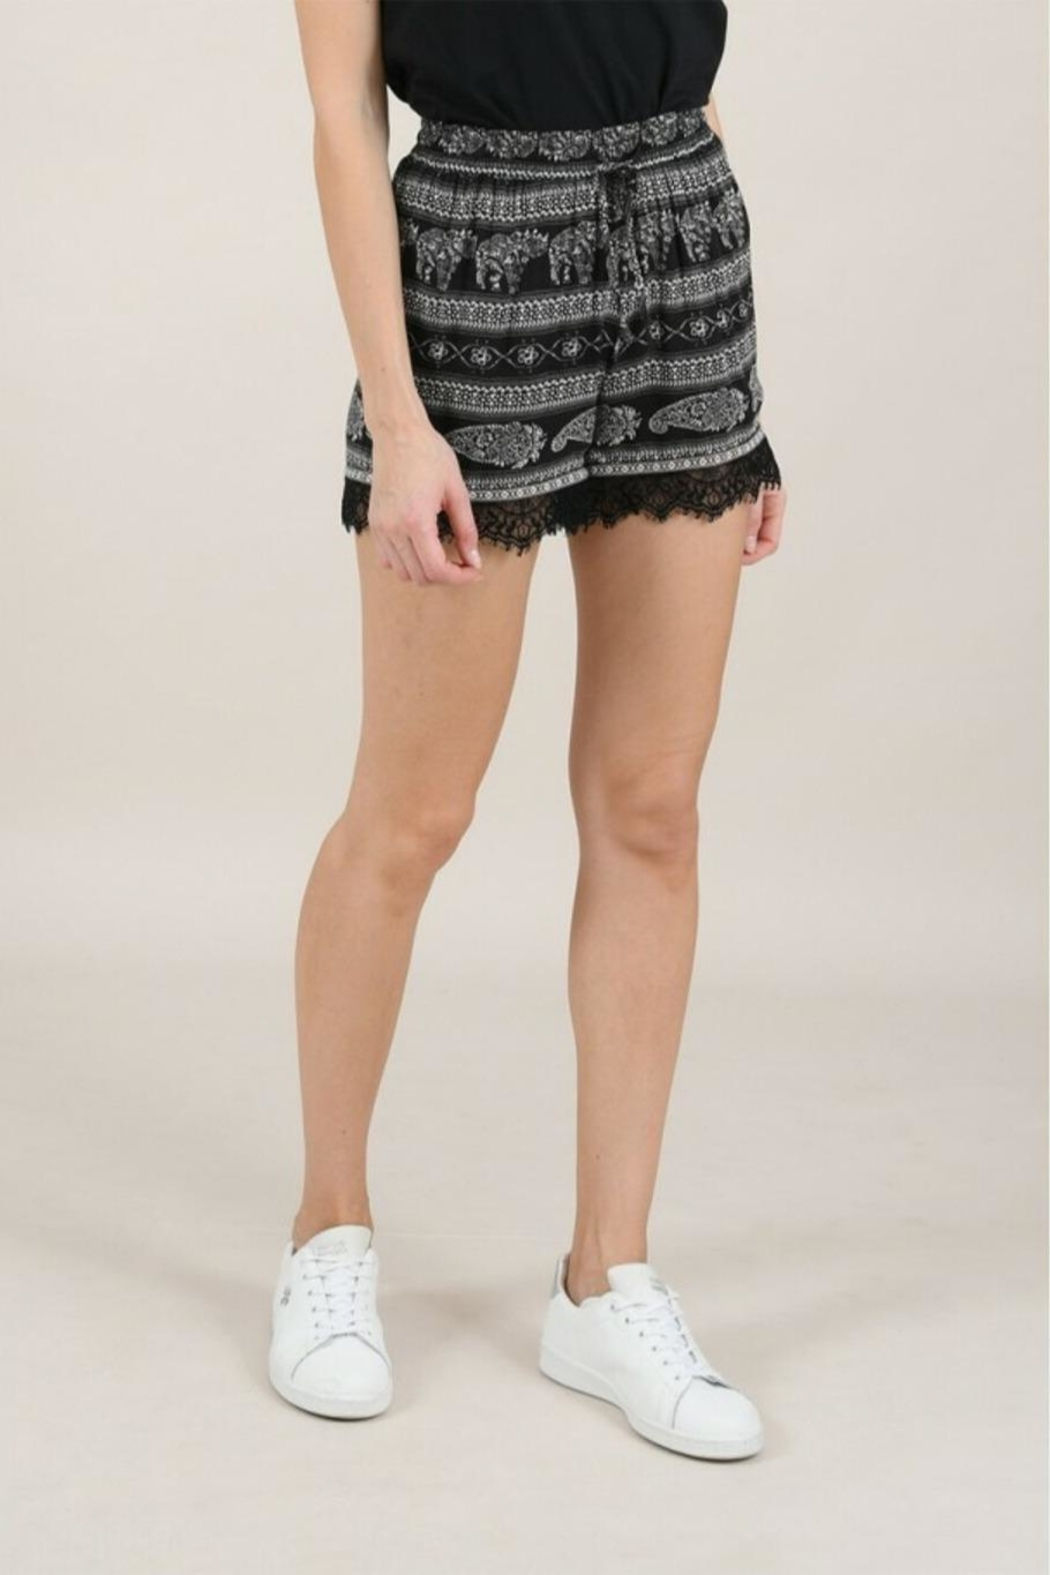 Molly Bracken Printed Lace Shorts - Back Cropped Image